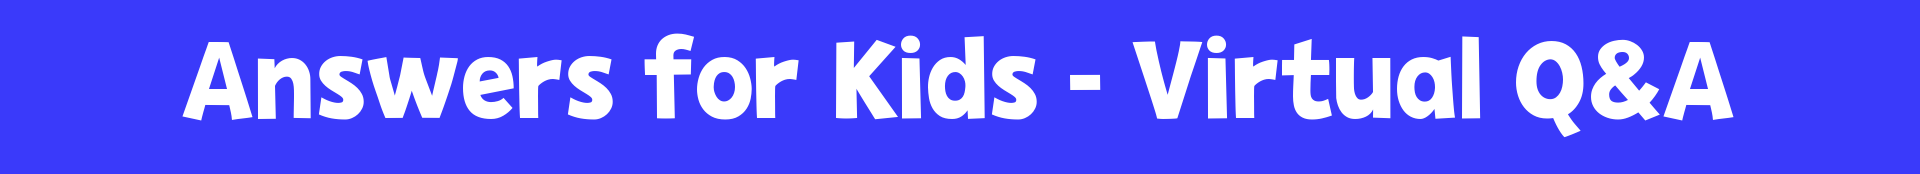 answer for kids banner